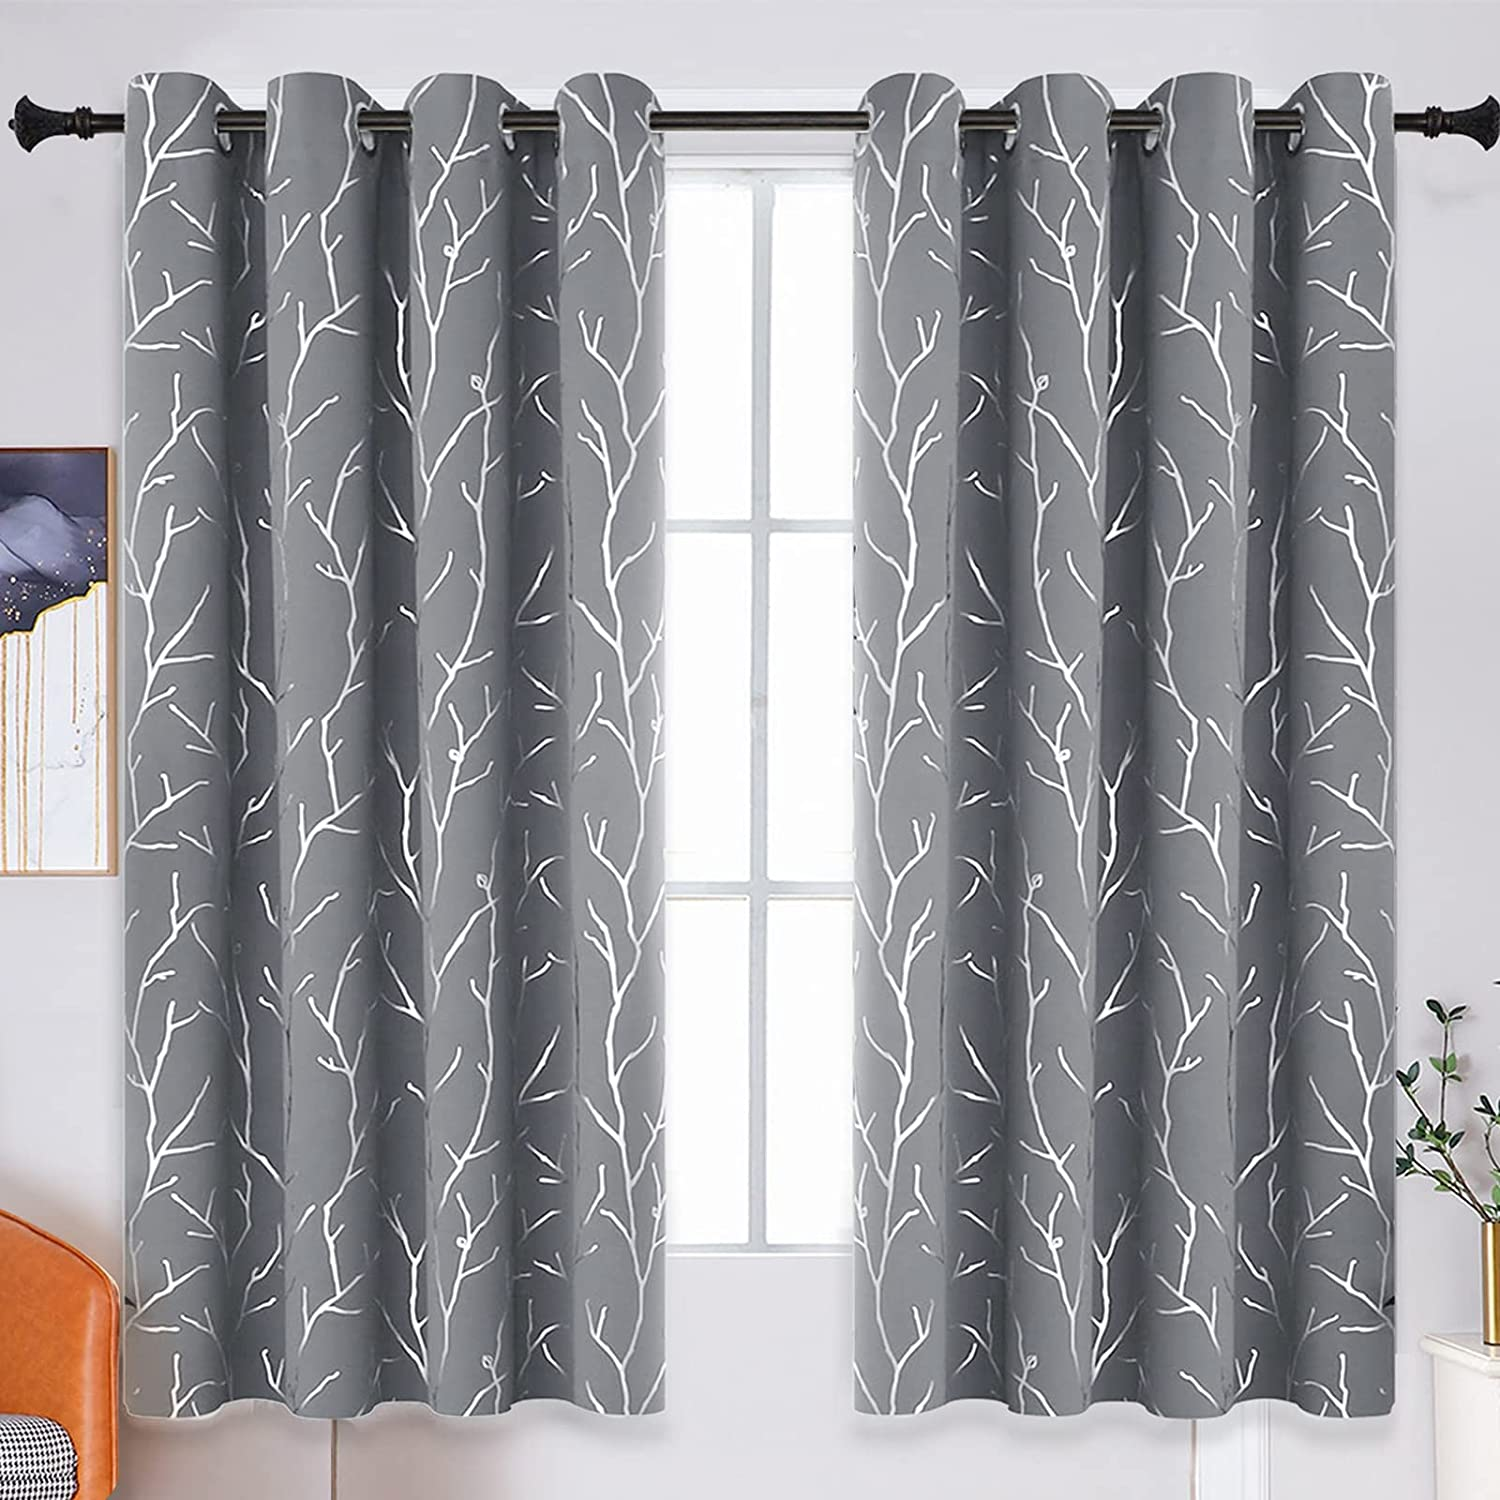 Popular overseas BUHUA Bedroom Blackout Curtains Grommet Fresno Mall Drapes Top Insul Thermal